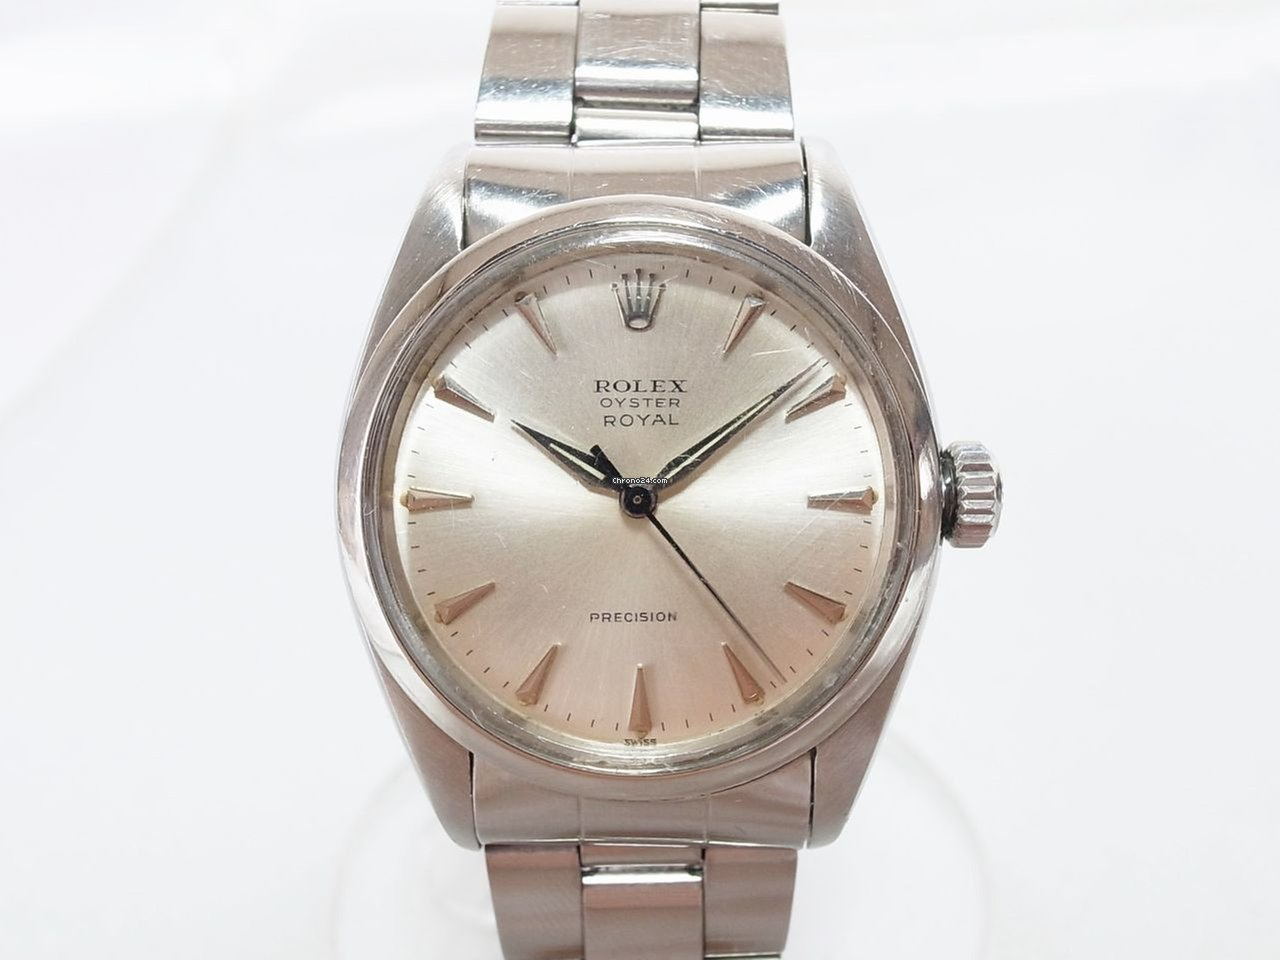 official photos c2de7 42aa1 Rolex Oyster Precision Royal 6426 vintage 1956